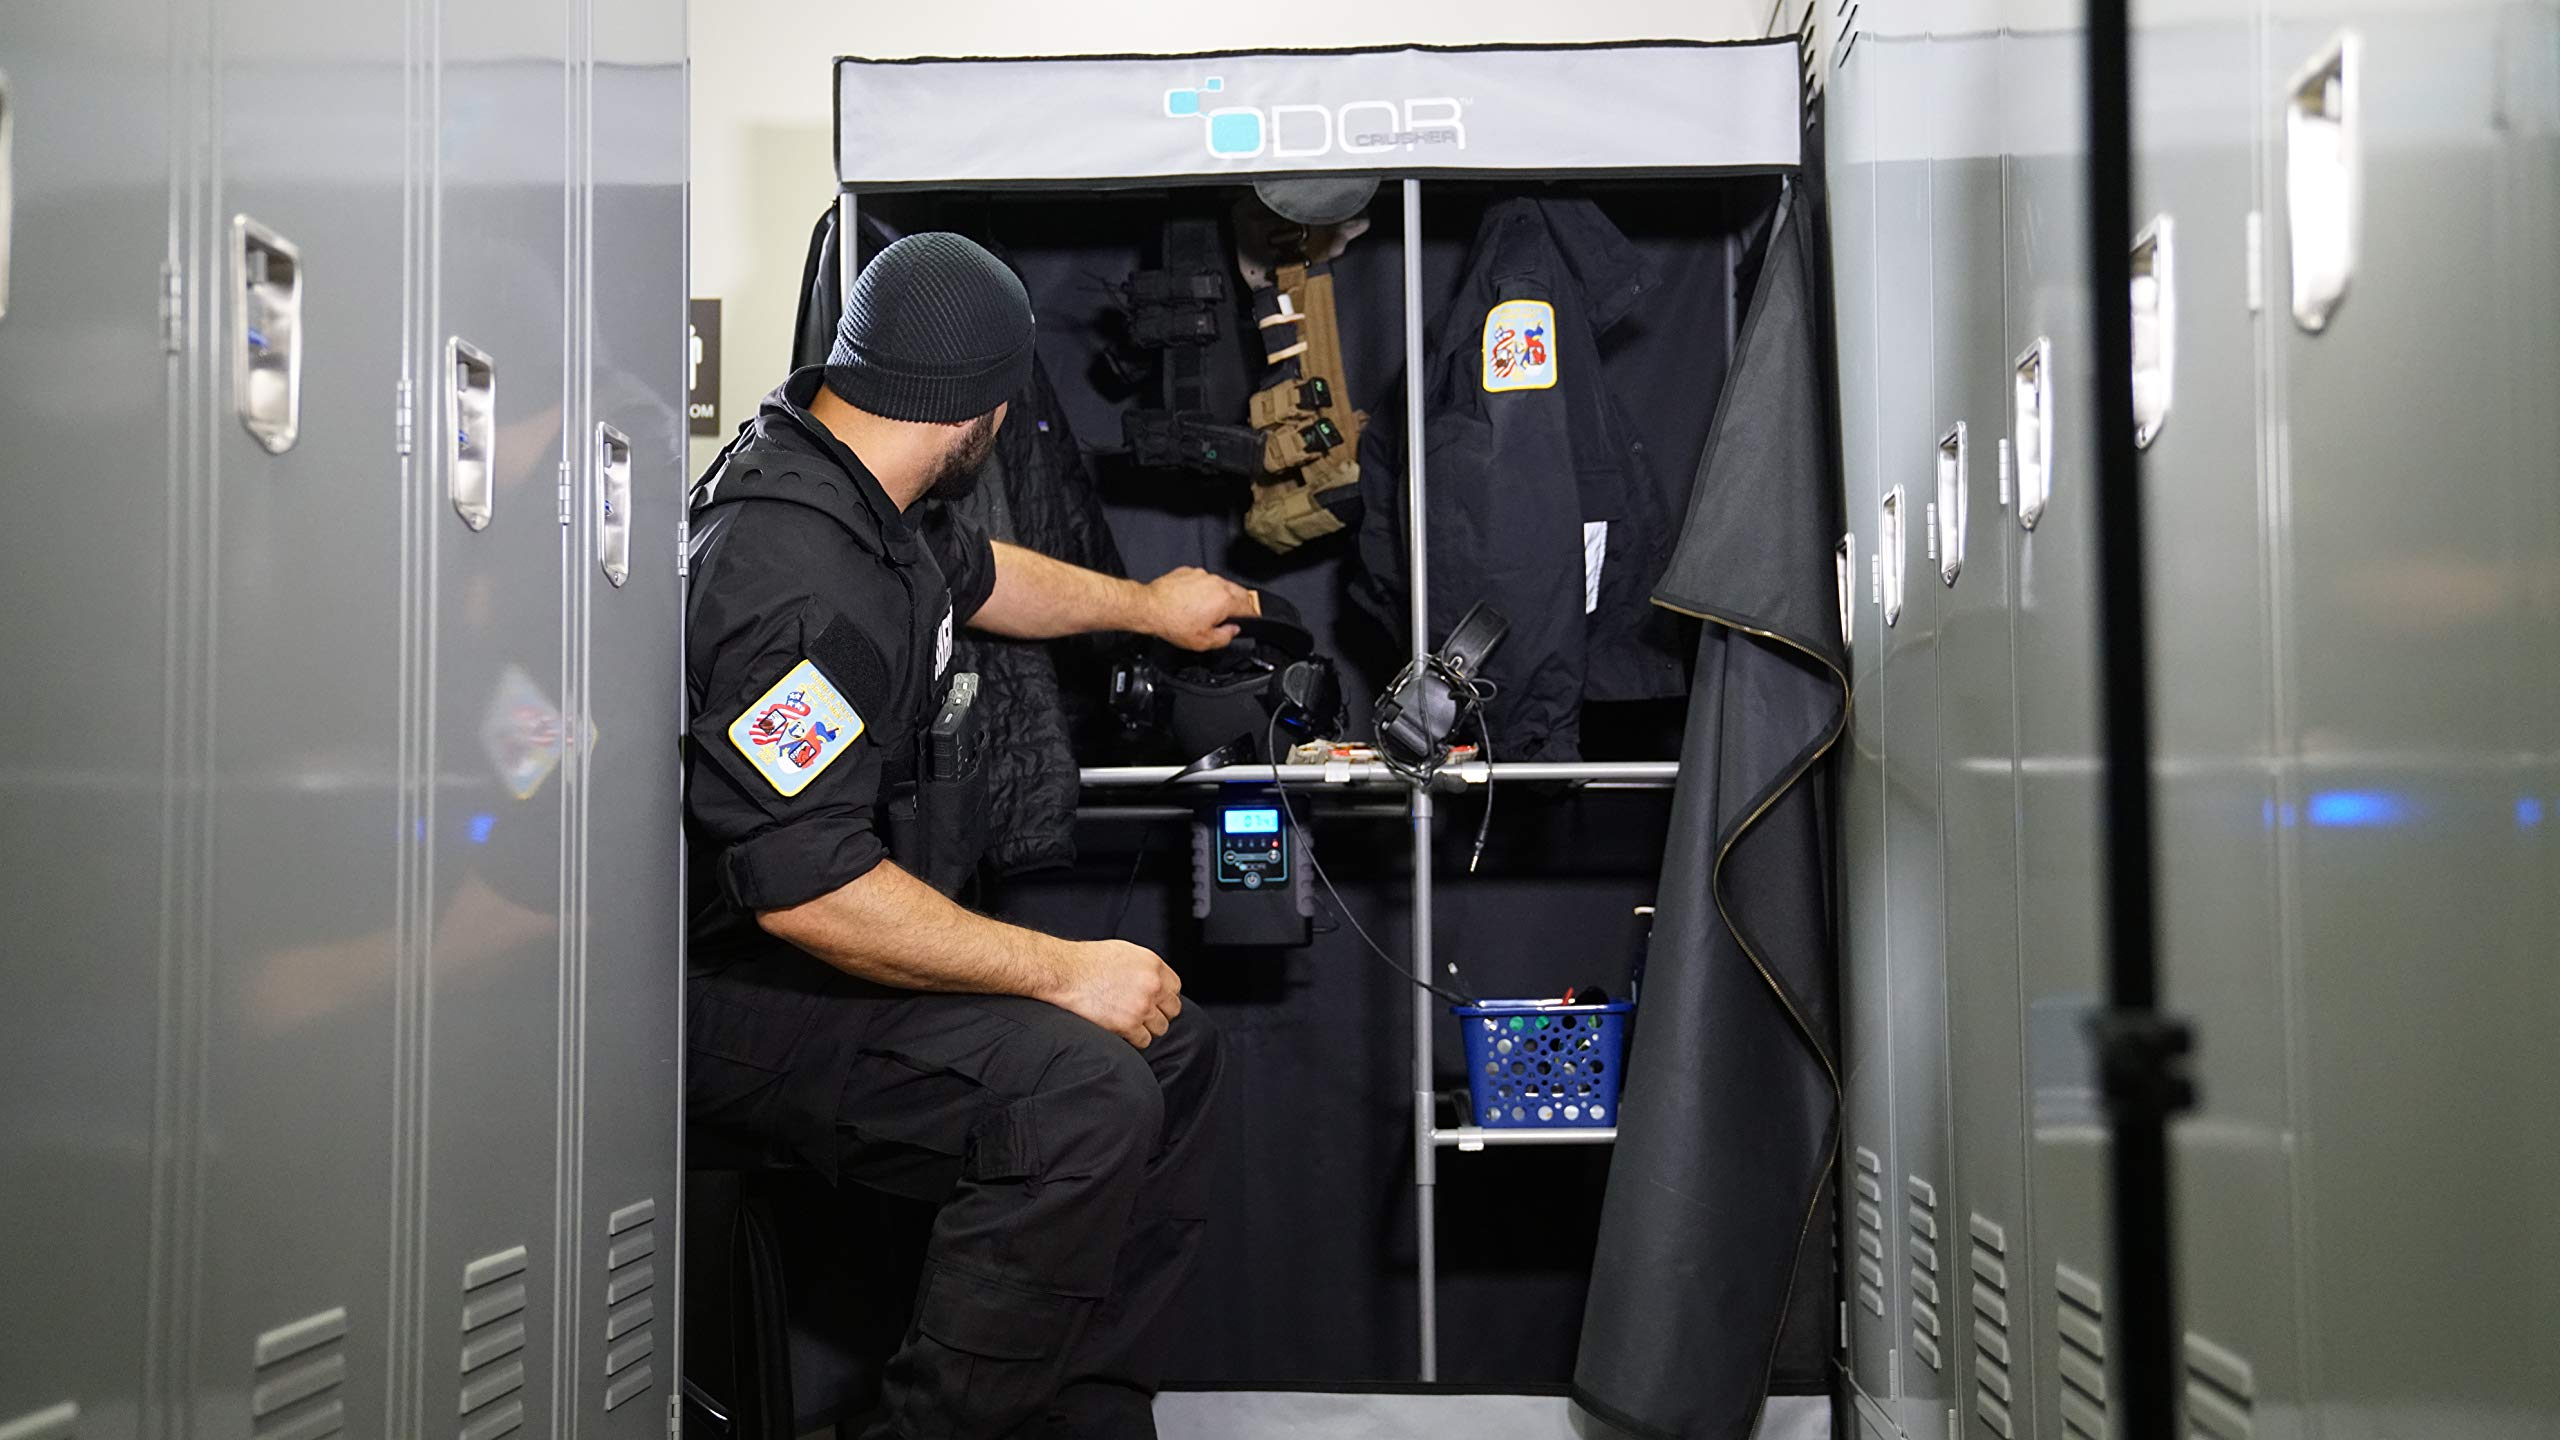 Odor Crusher Tactical Deluxe Flex Closet with Ozone Generator - Destroys Bacteria and Odors Within 30 mins, Storage for Clothes, Equipment & Gear in Barracks, Locker Rooms, Garages & Basements